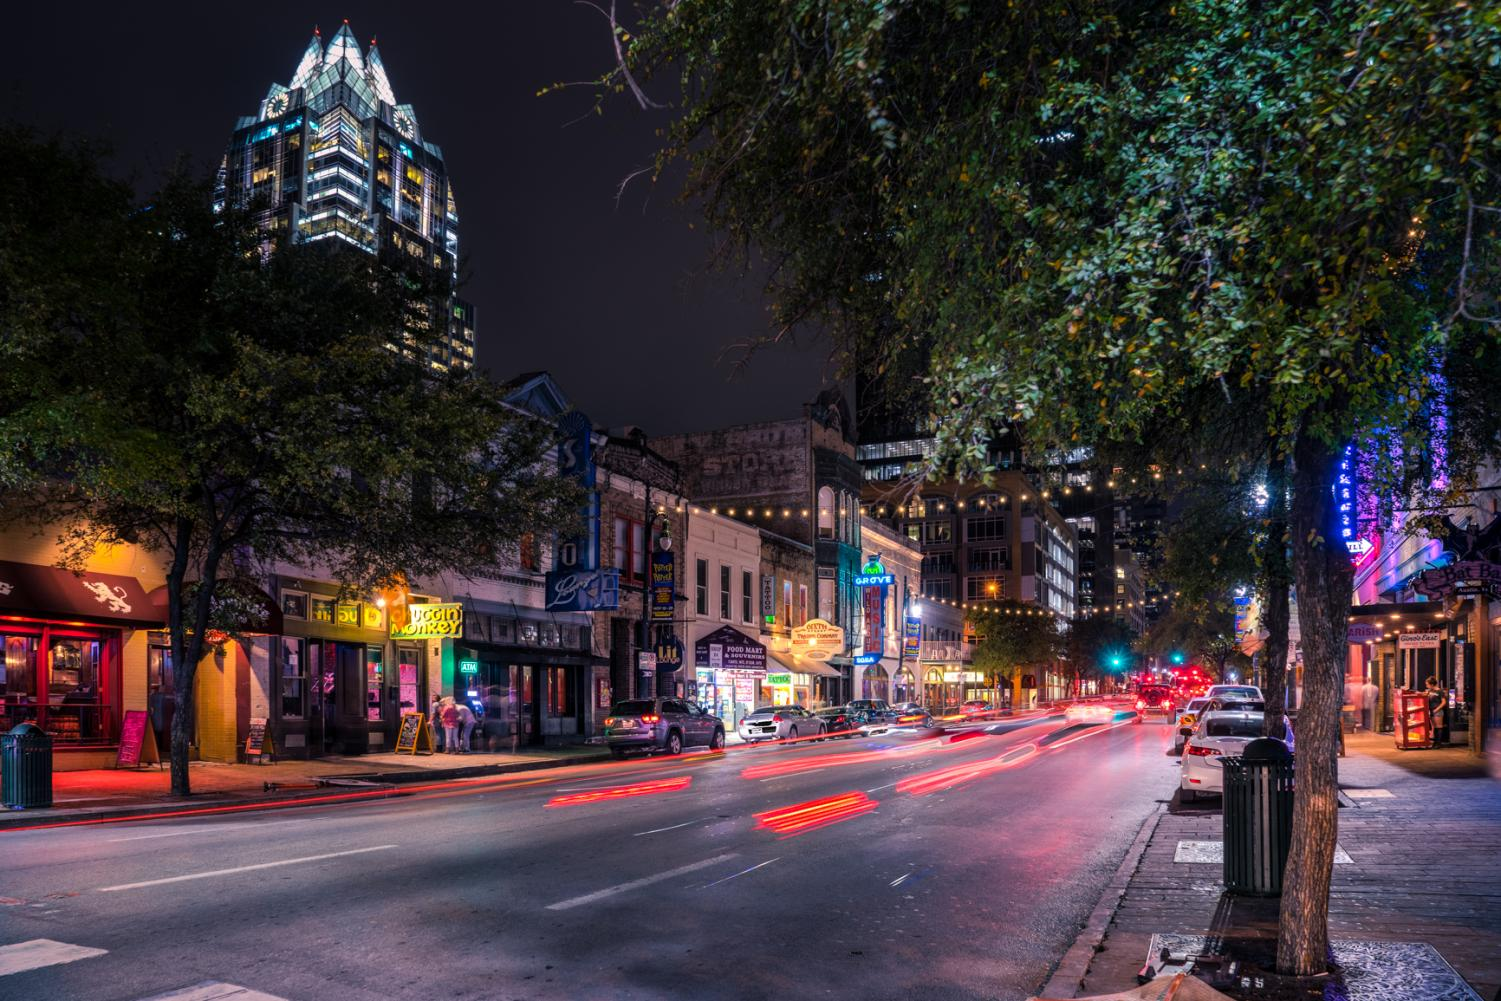 Most nights during the pandemic, Austin